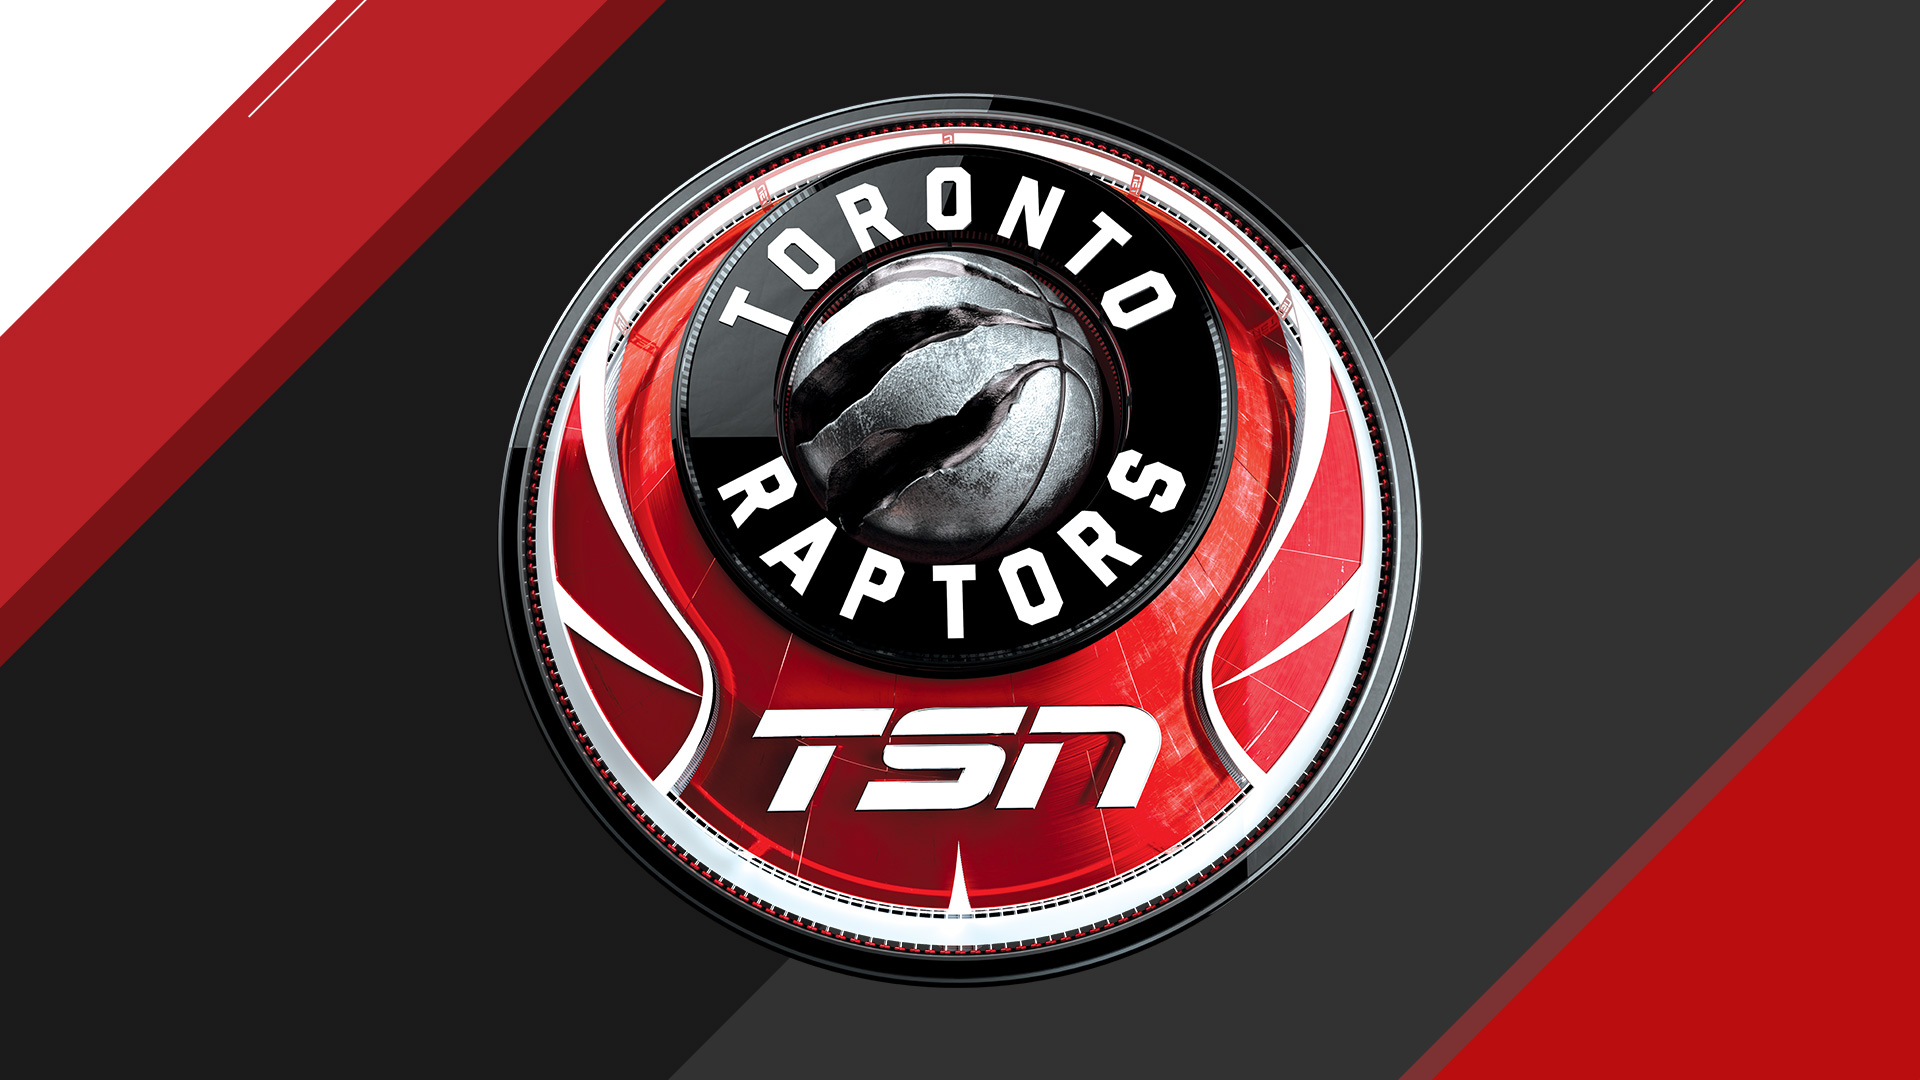 Sprite Raptors Basketball on TSN